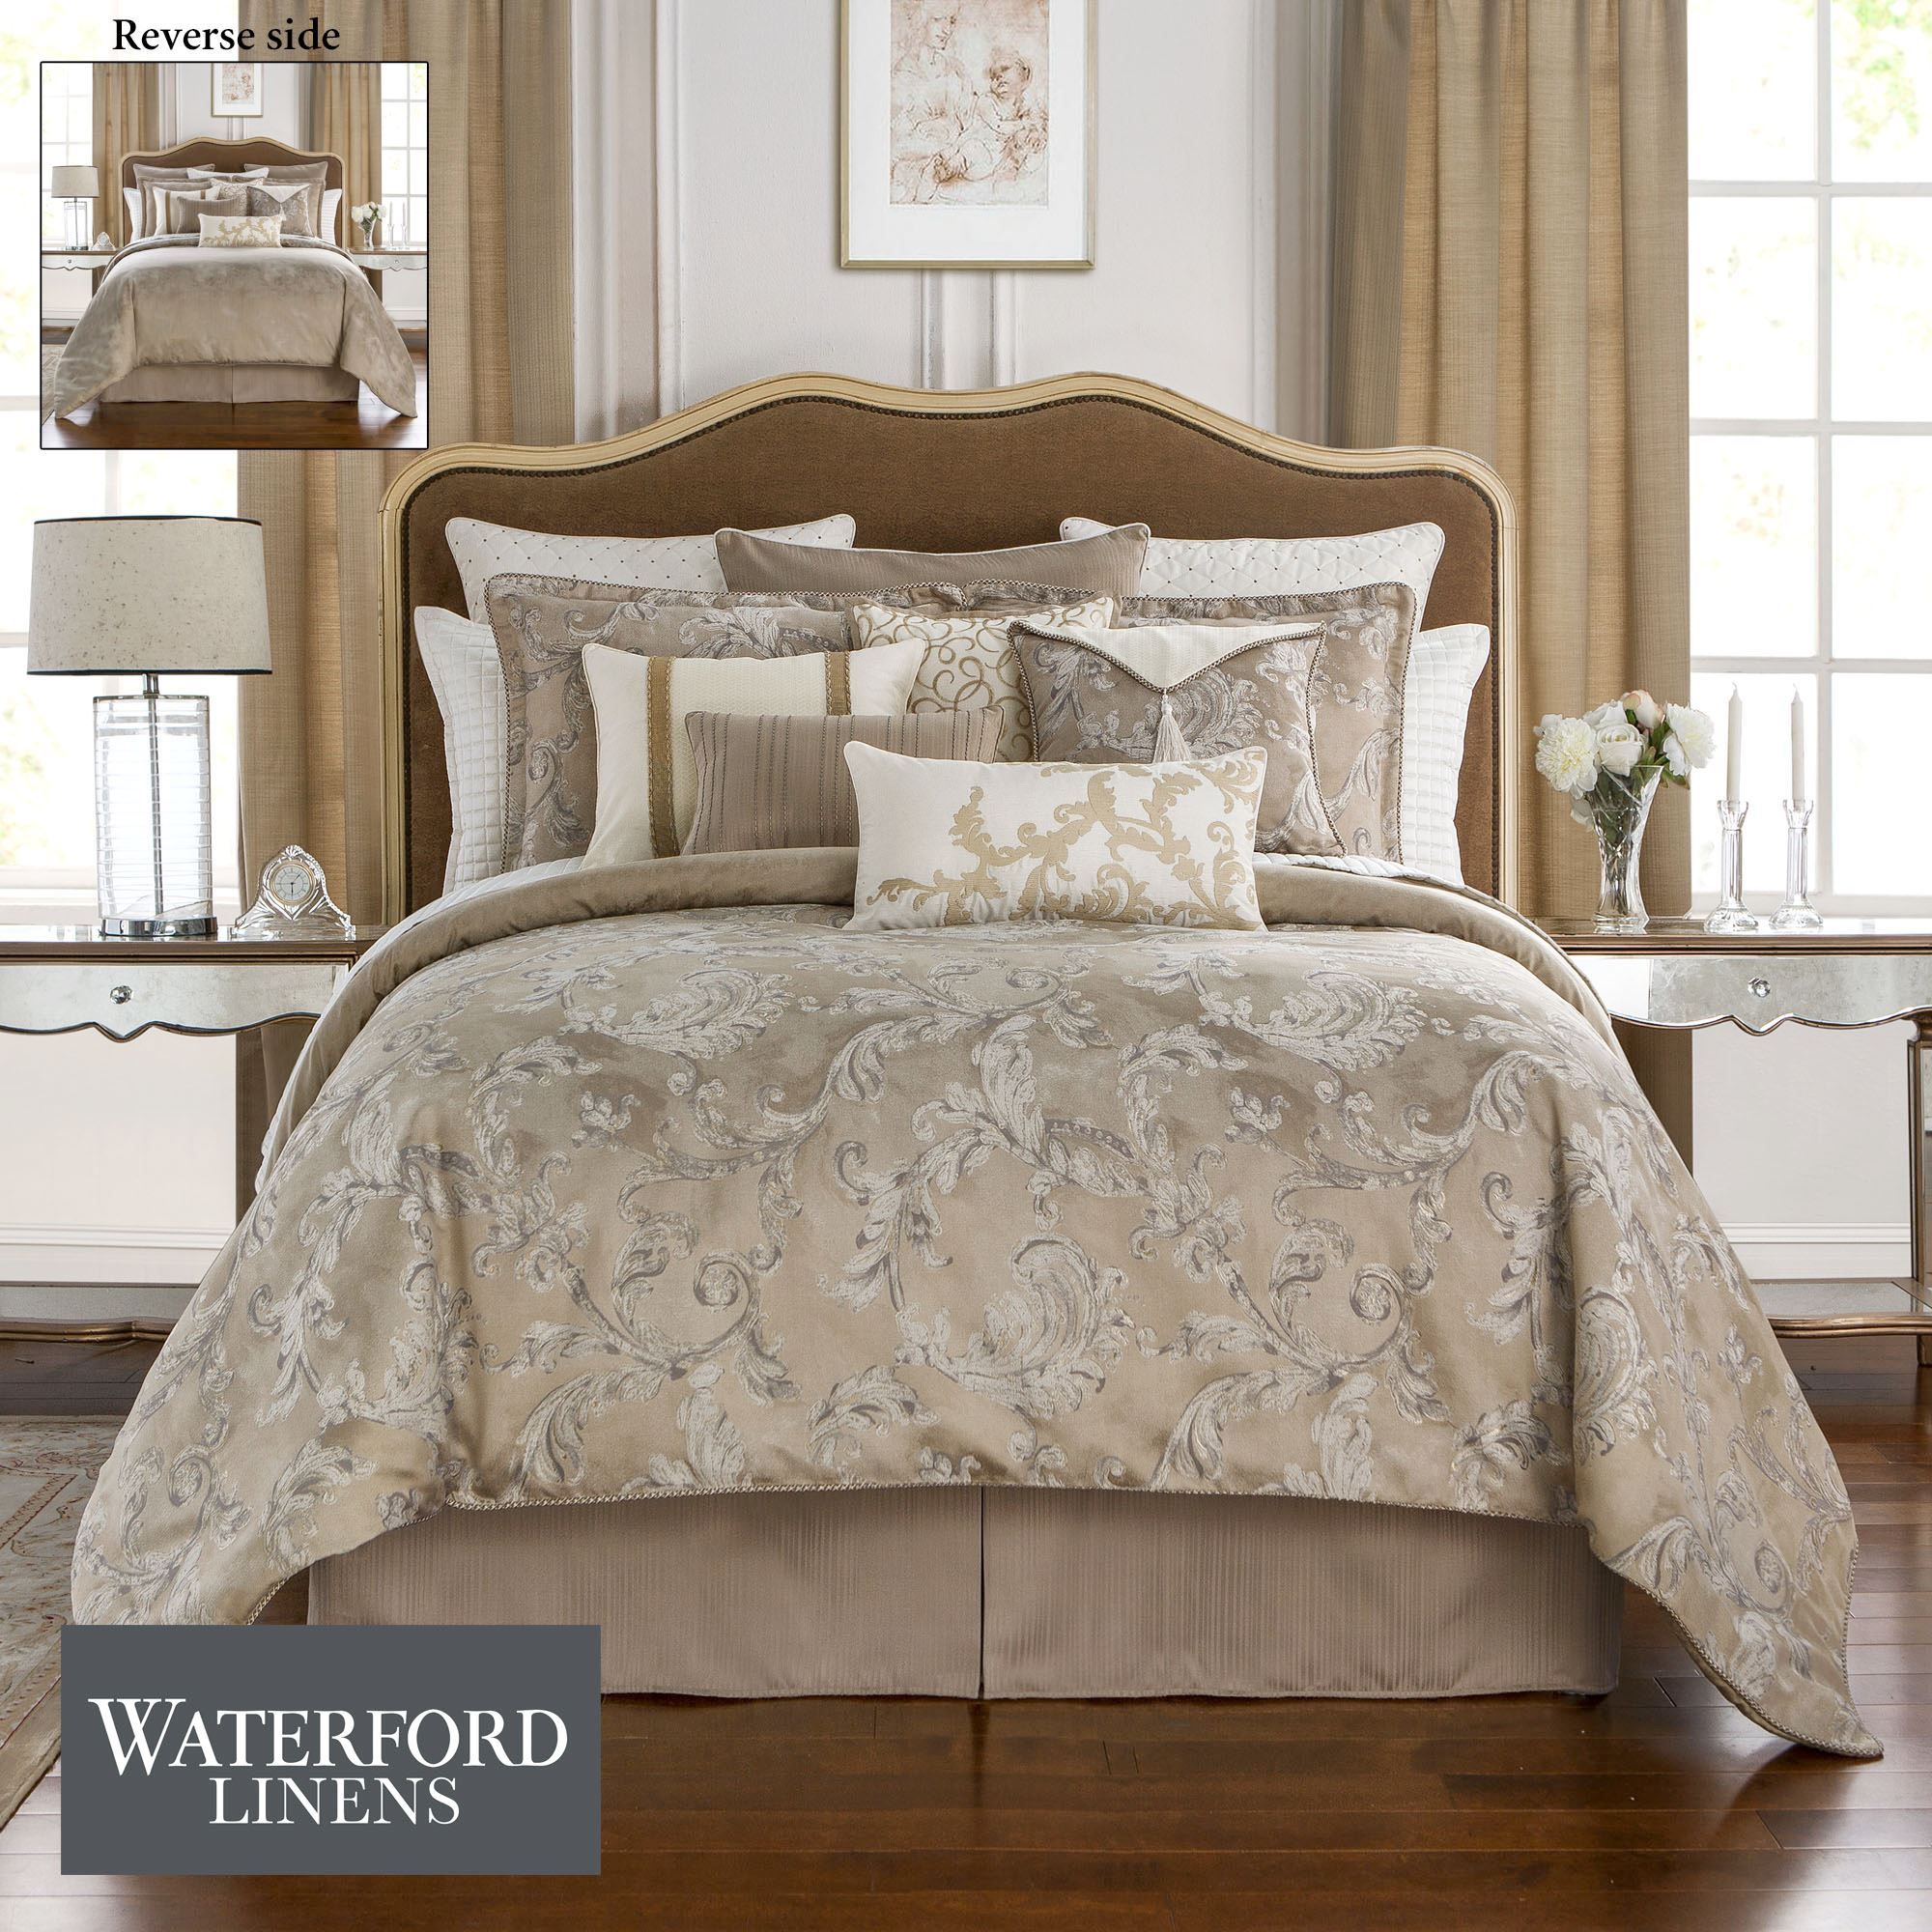 by damask montaigne acanthus linens bedding set charcoal waterford linen pin comforter